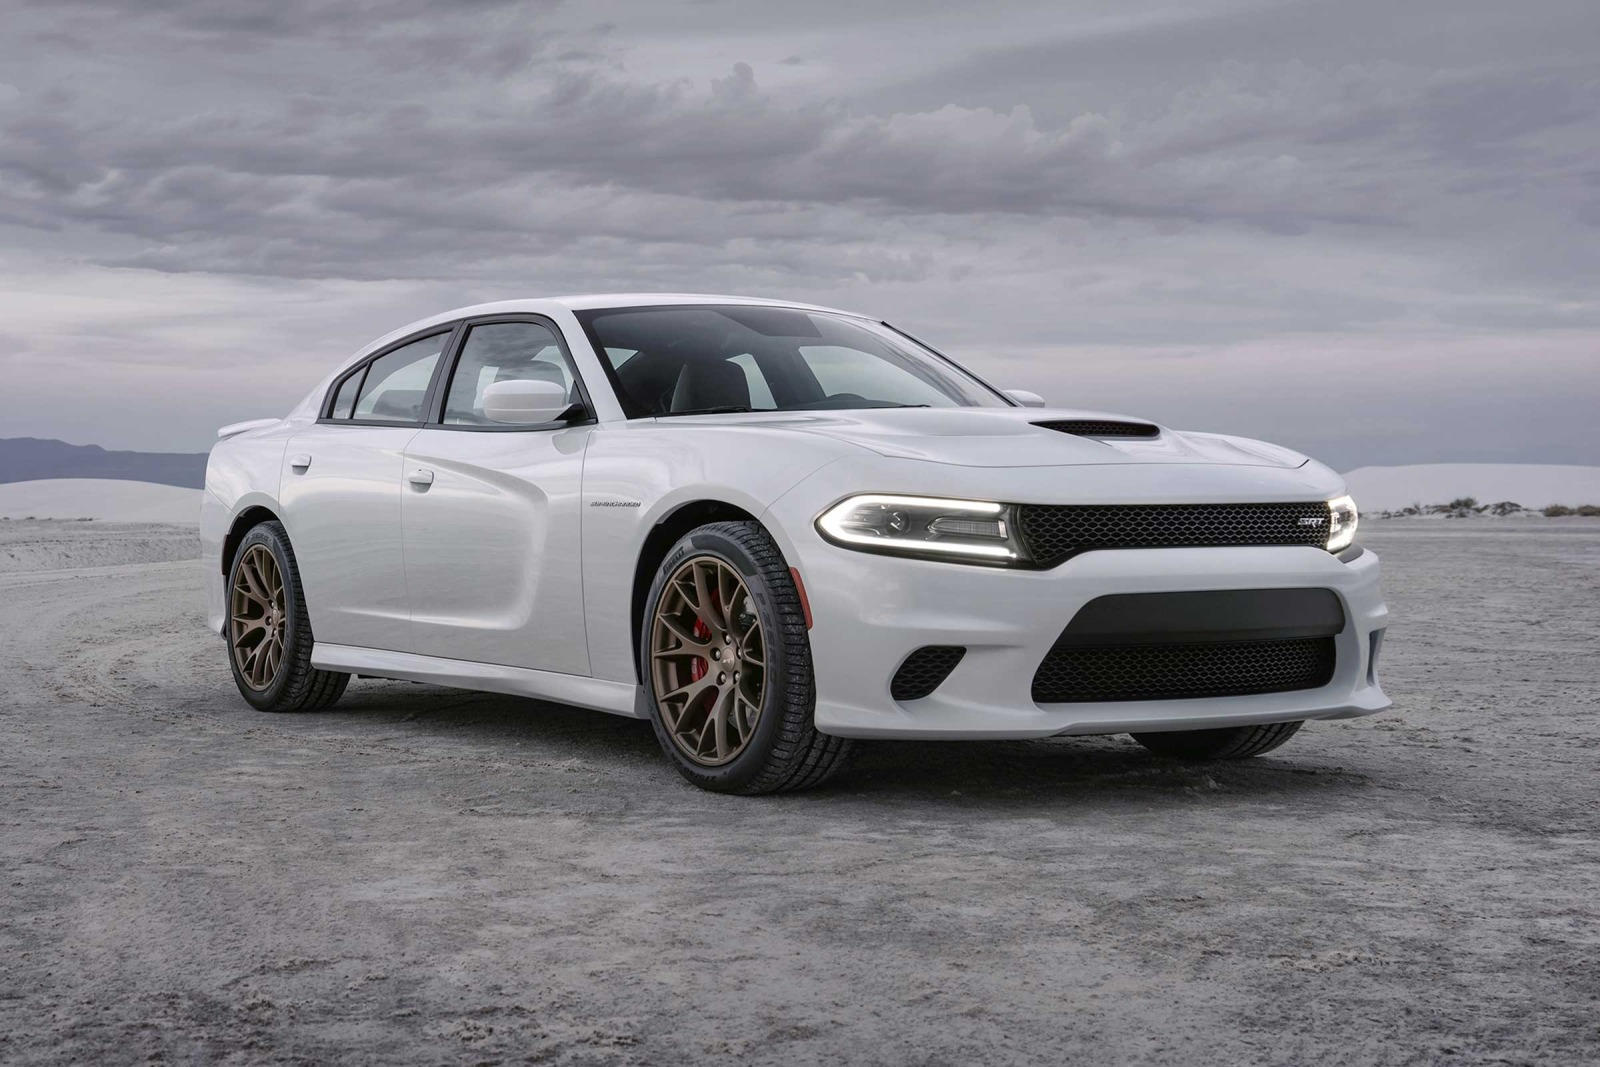 Dodge Challenger Srt Hellcat >> 2018 Dodge Charger SRT Hellcat Review, Trims, Specs and Price - CarBuzz